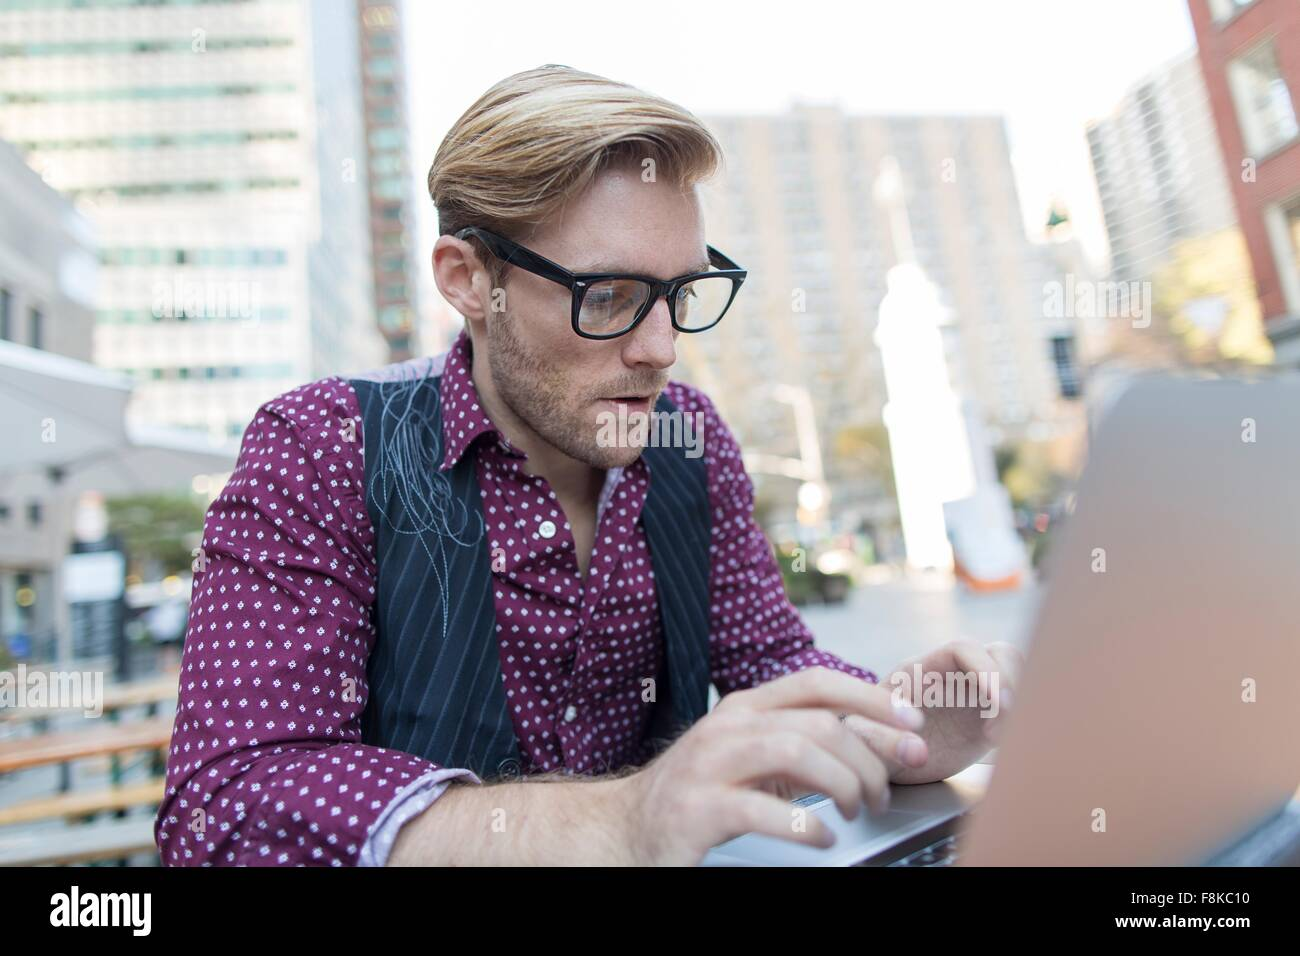 Stressed young businessman typing on laptop at sidewalk cafe, New York, USA - Stock Image